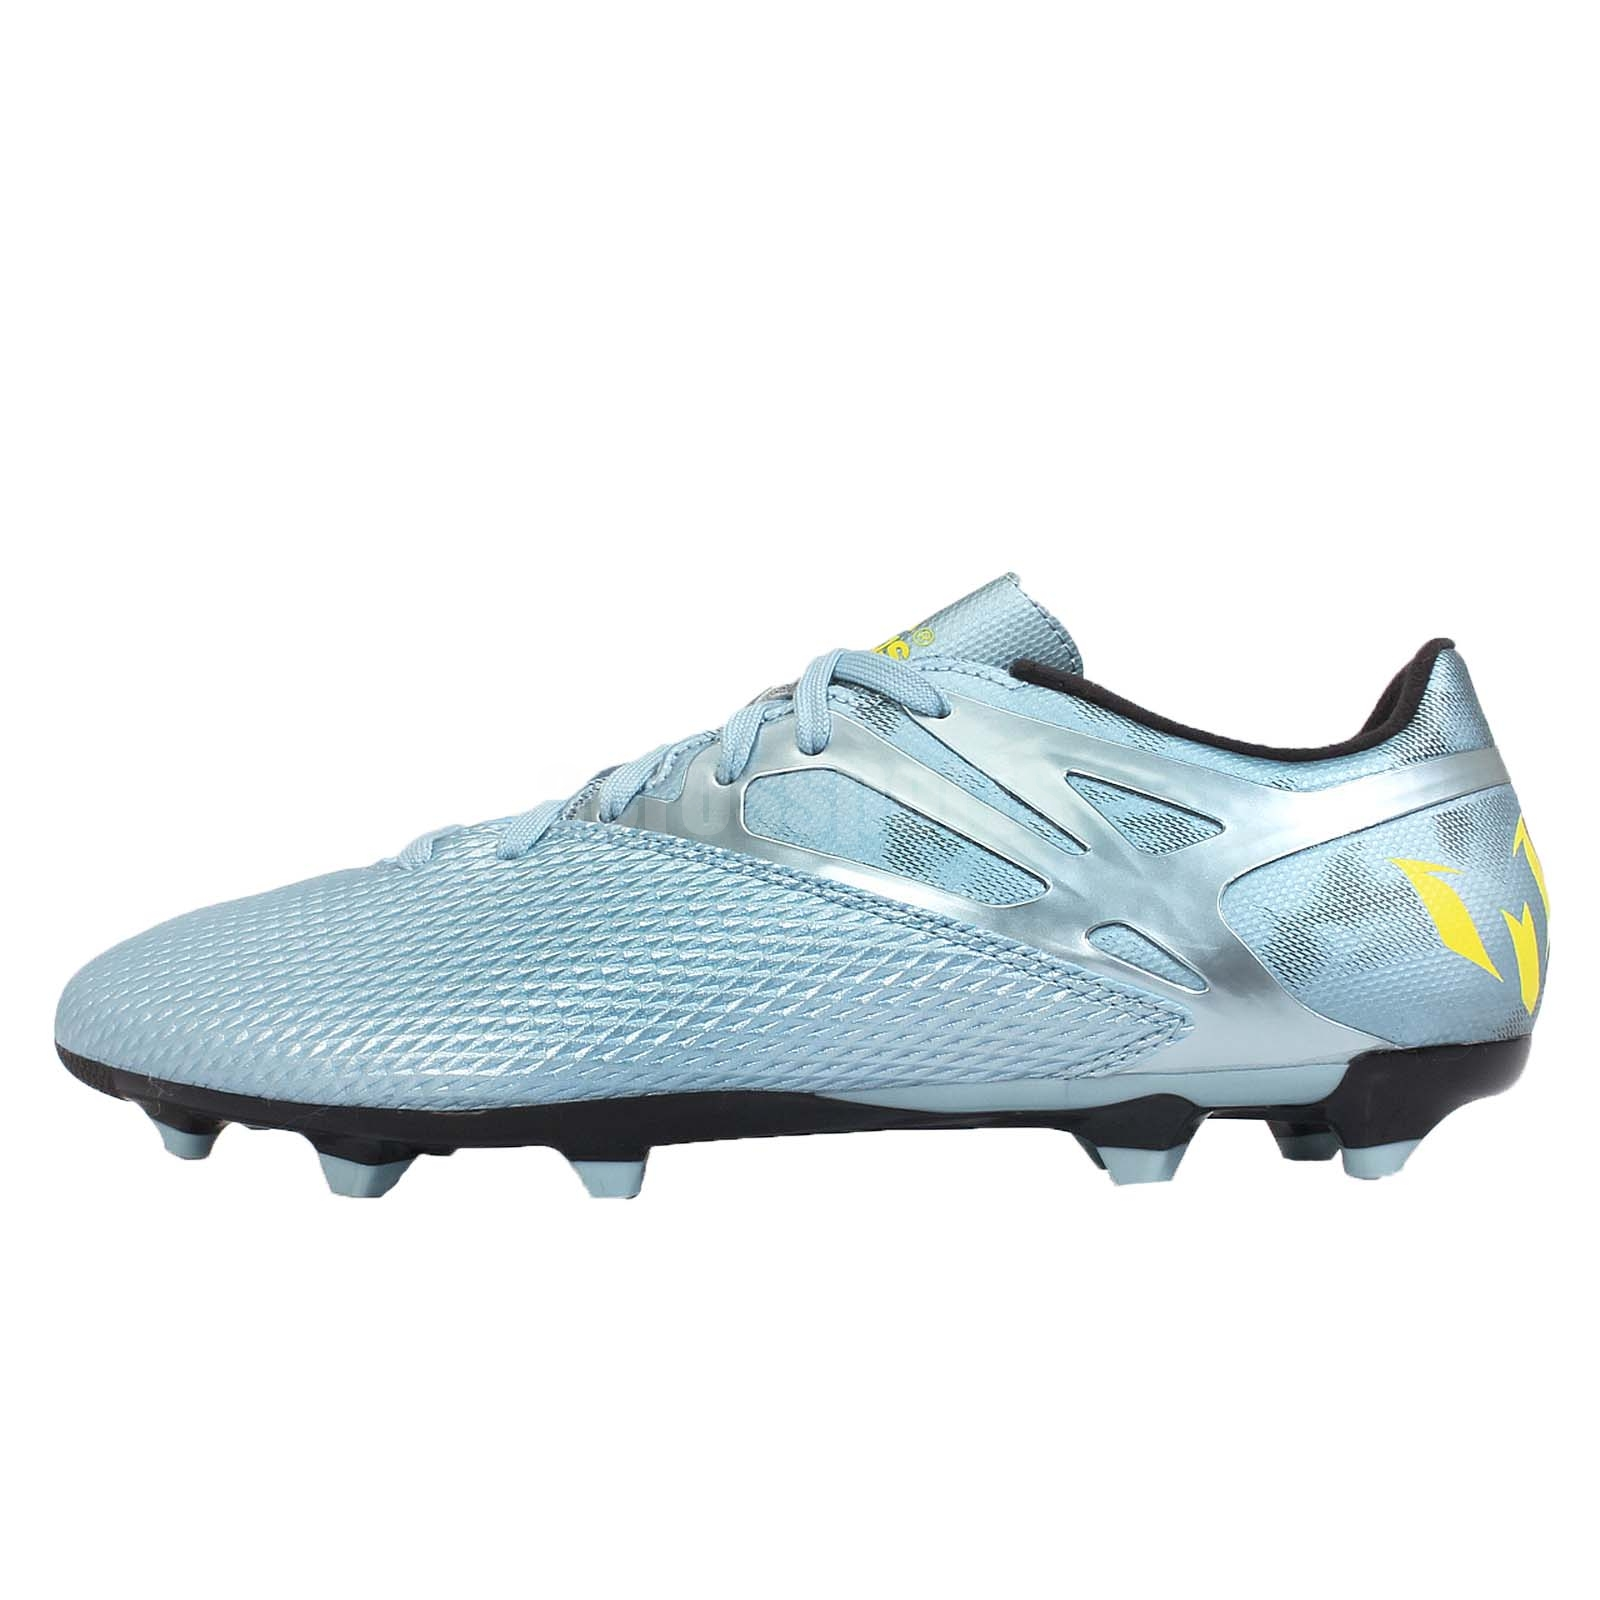 adidas messi 15 3 fg ag lionel messi blue mens soccer